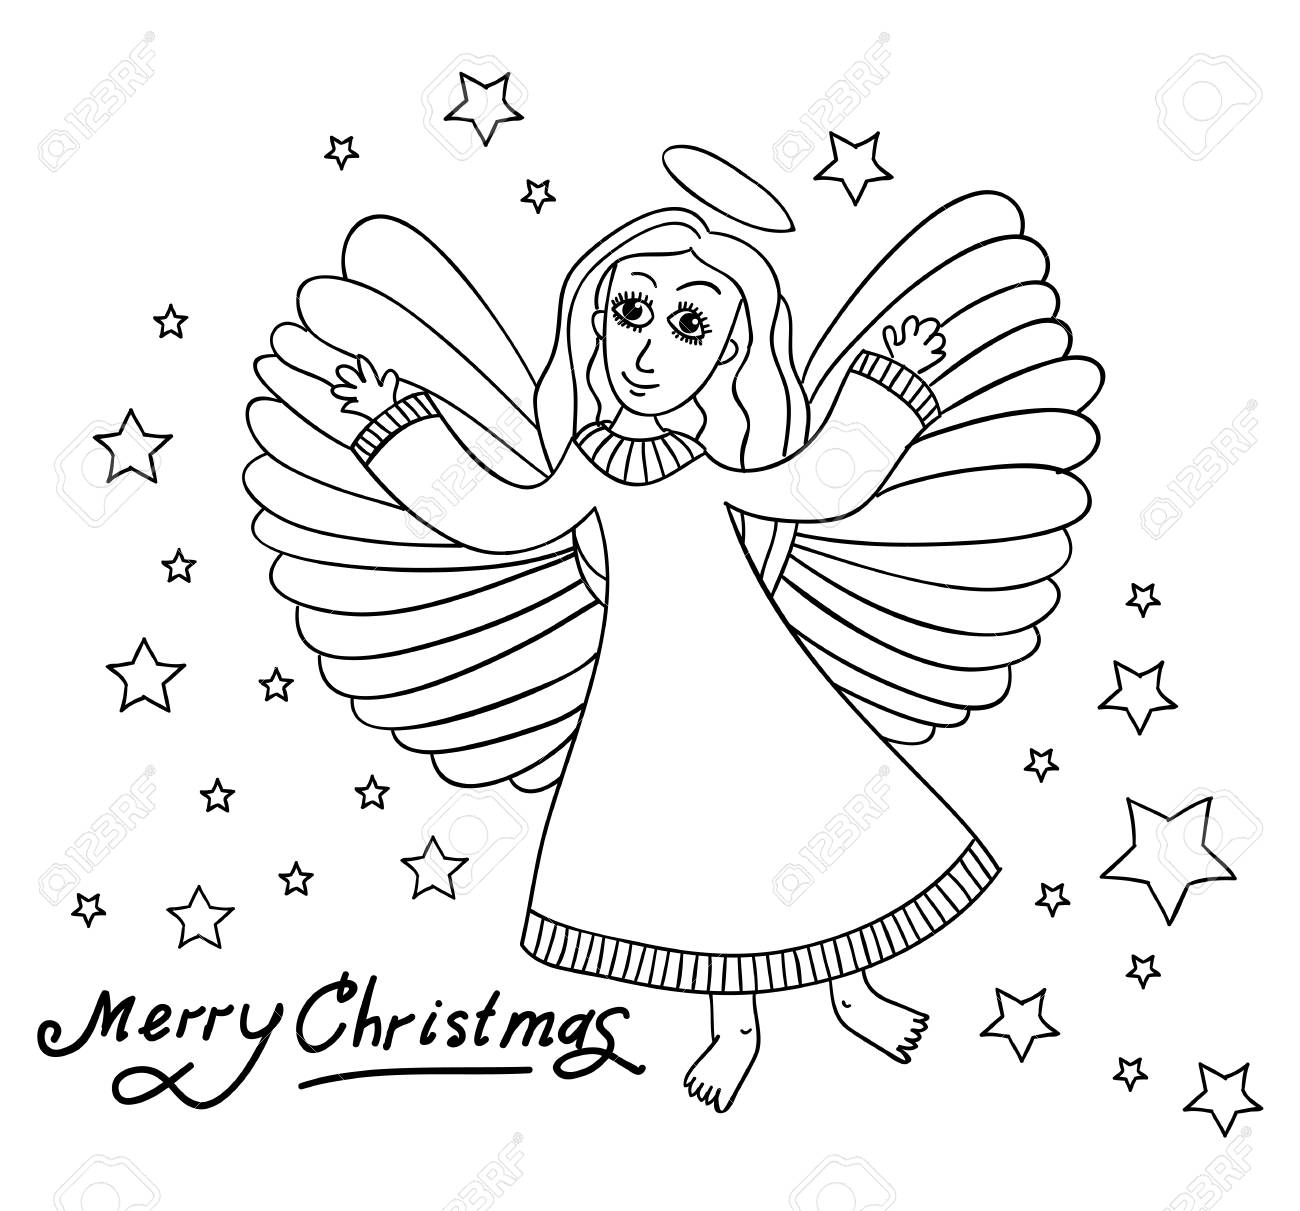 Christmas Card With Angal In Kids Style. Hands Draw Sketch. Black ...